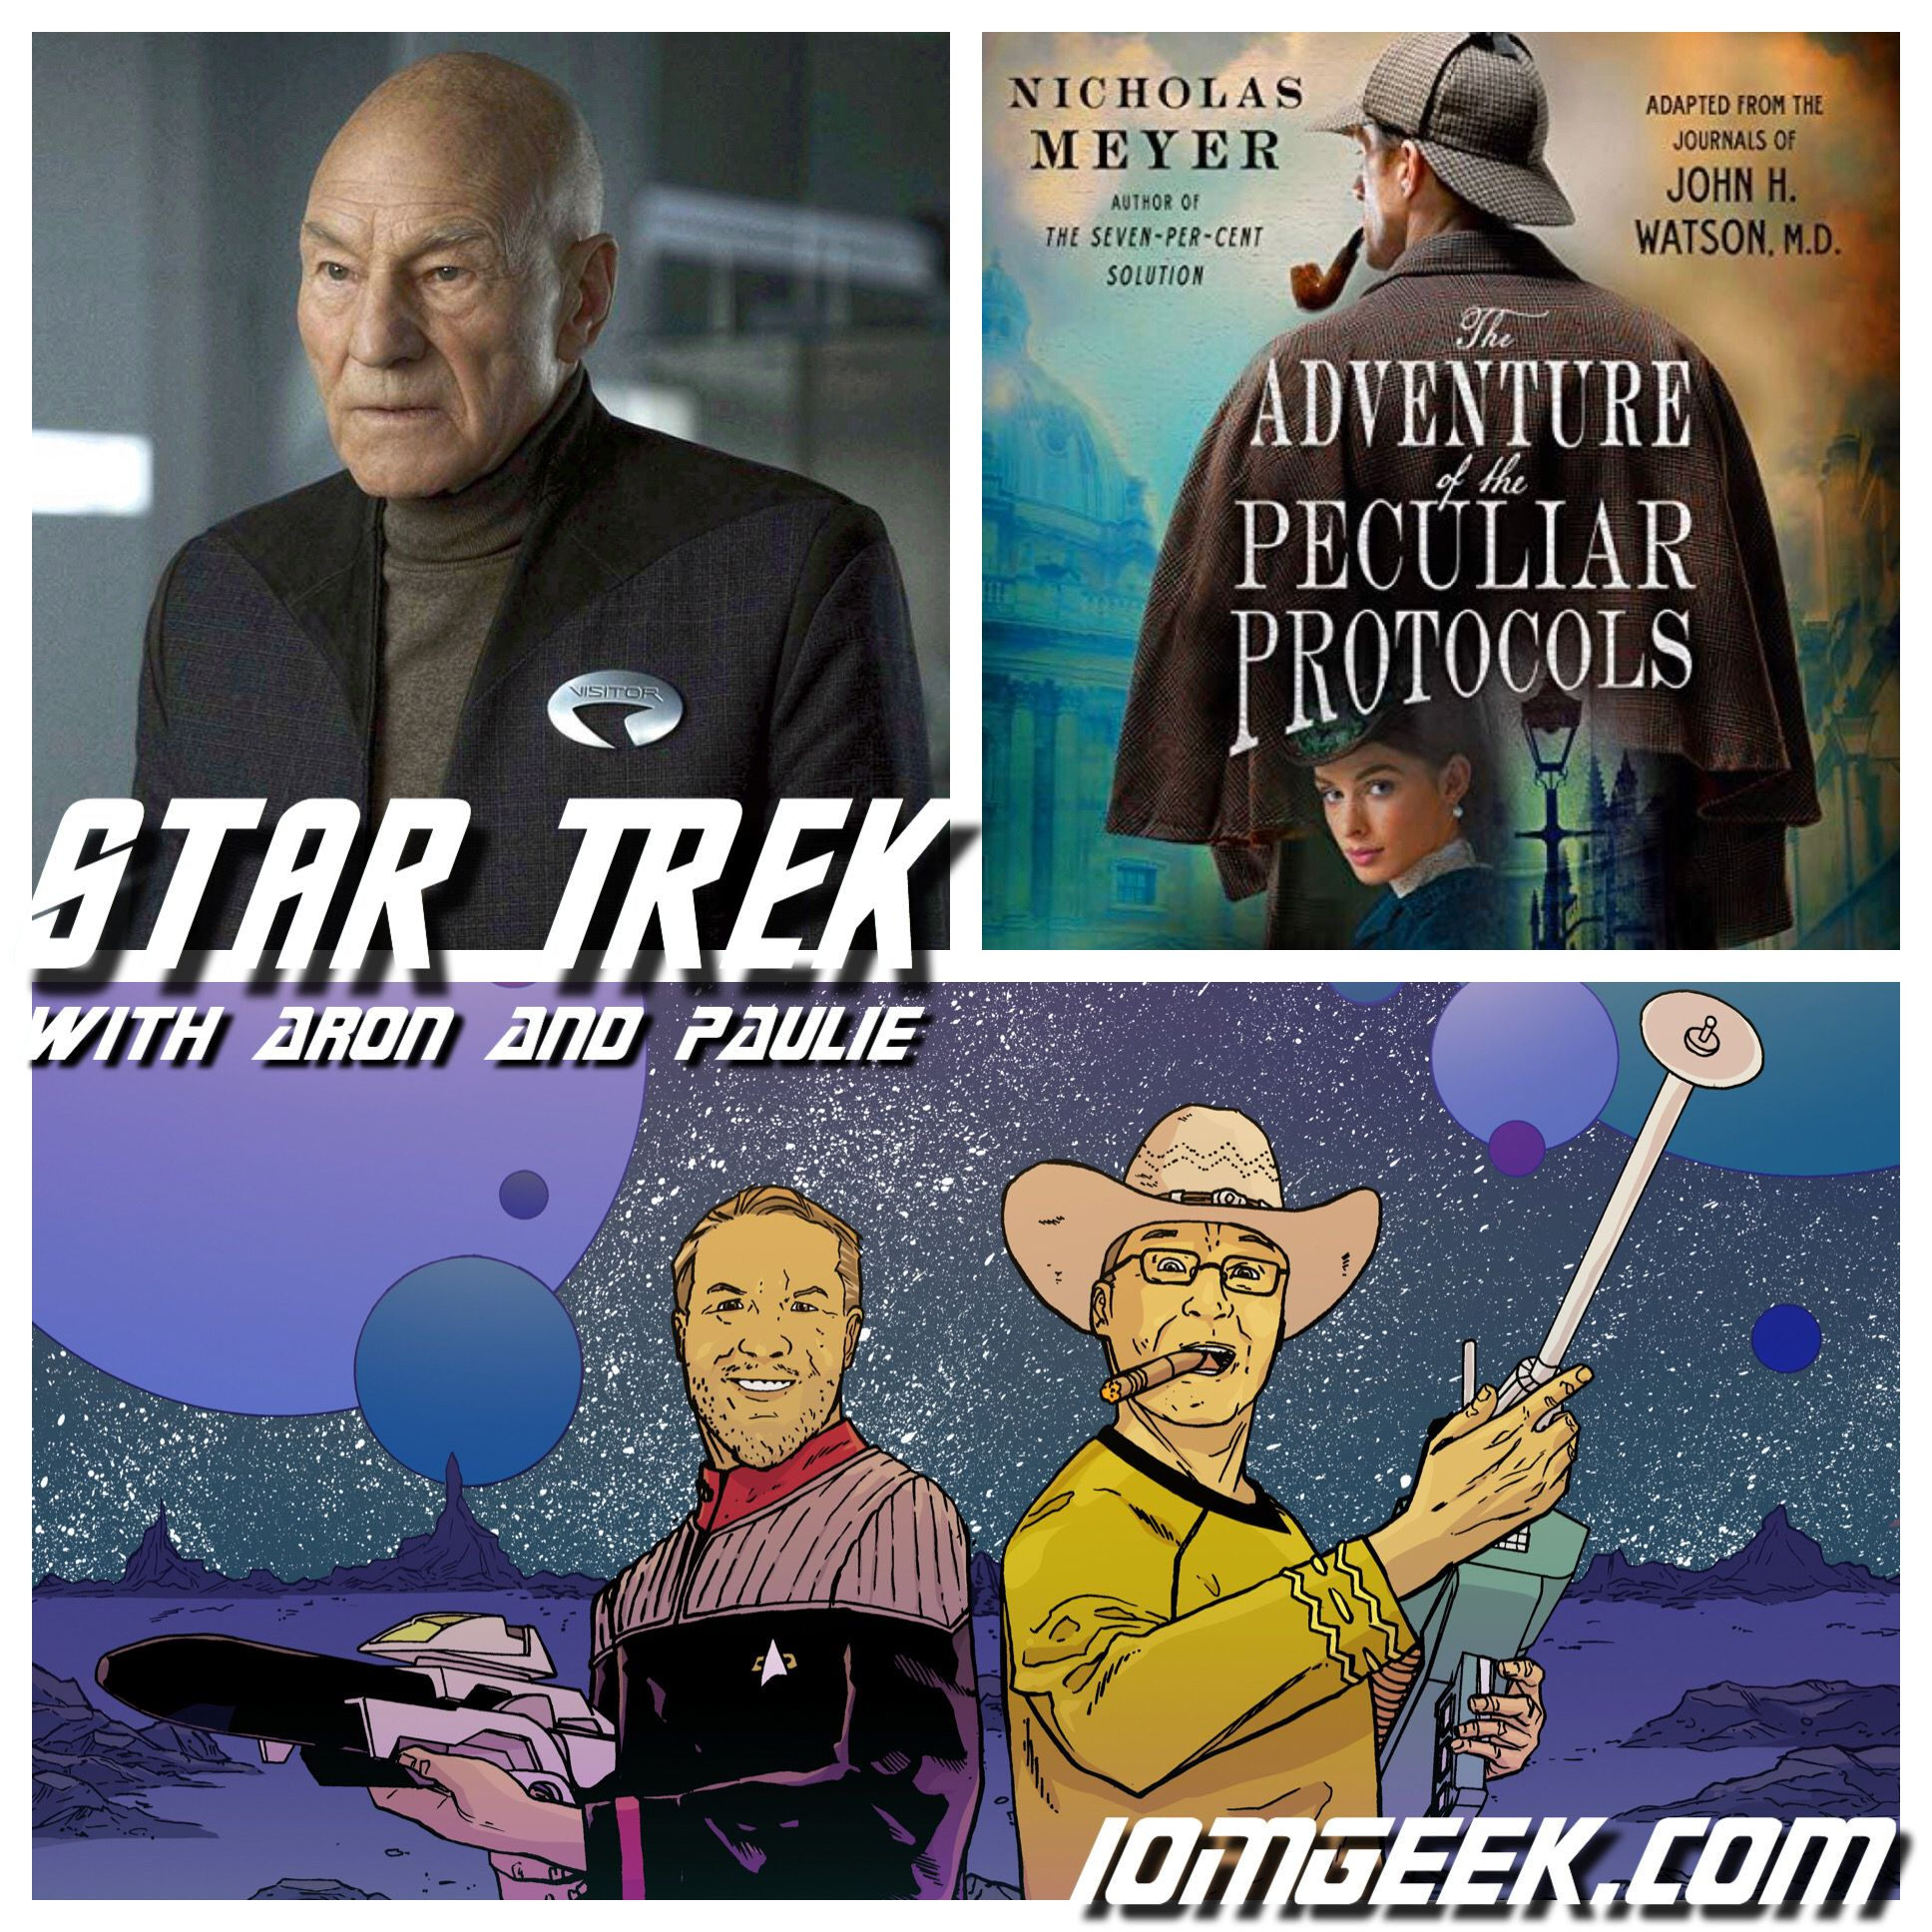 Star Trek: Picard Pre-show and Sherlock Holmes and the Adventure of the Peculiar Protocols